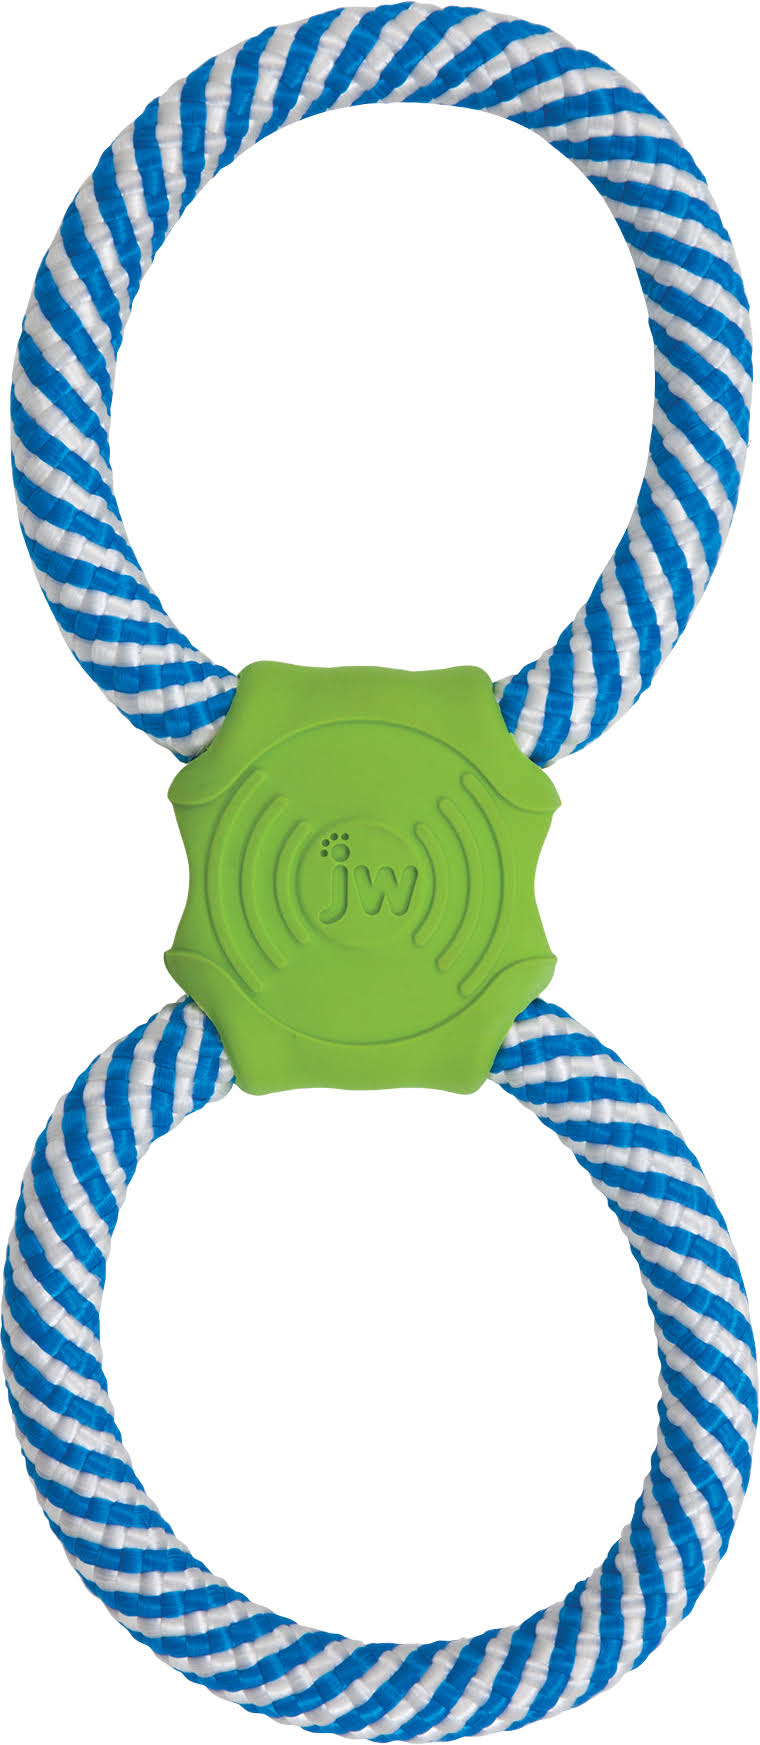 JW Giggle Tug Dog Toy